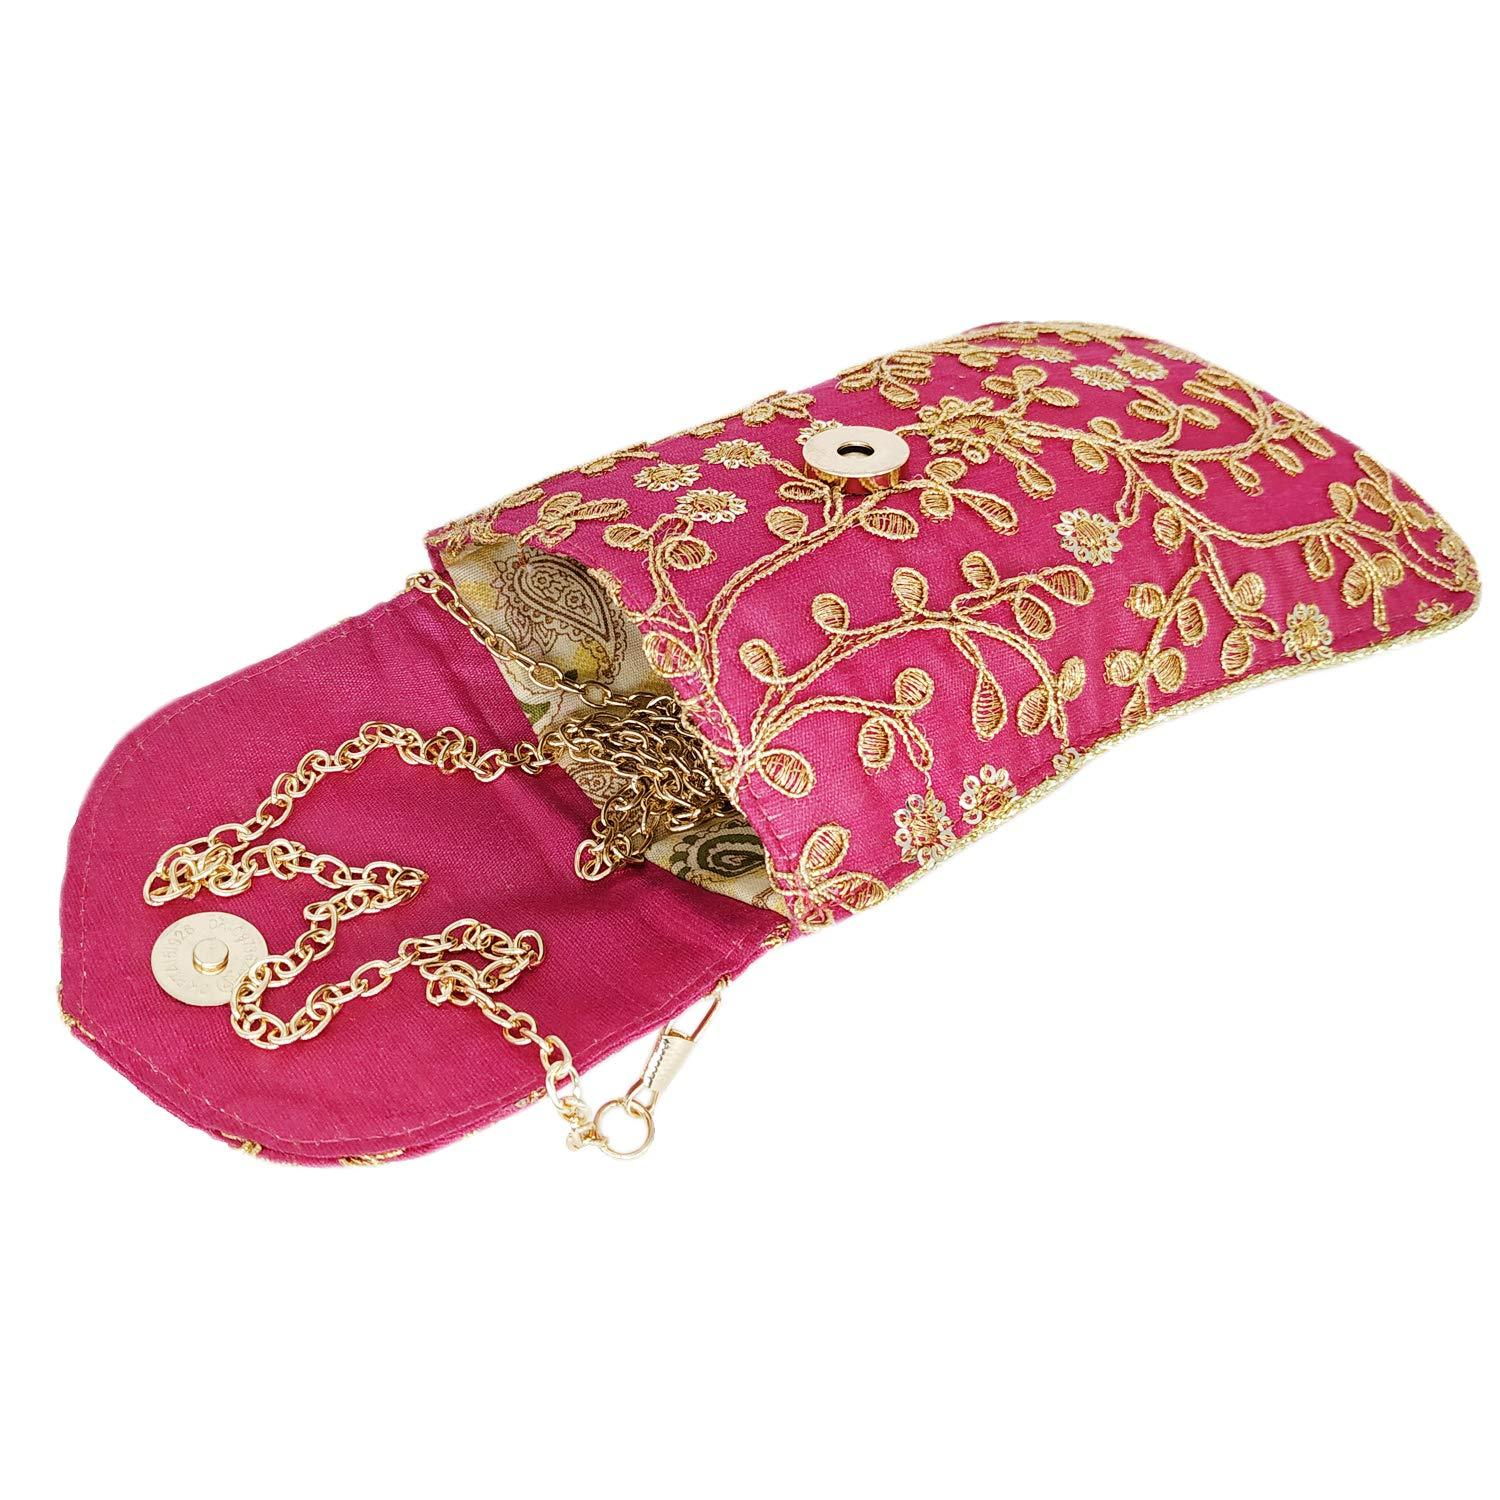 Raw Silk Mobile Pouch with Golden Chain and Waist Clip - Bagaholics Gift